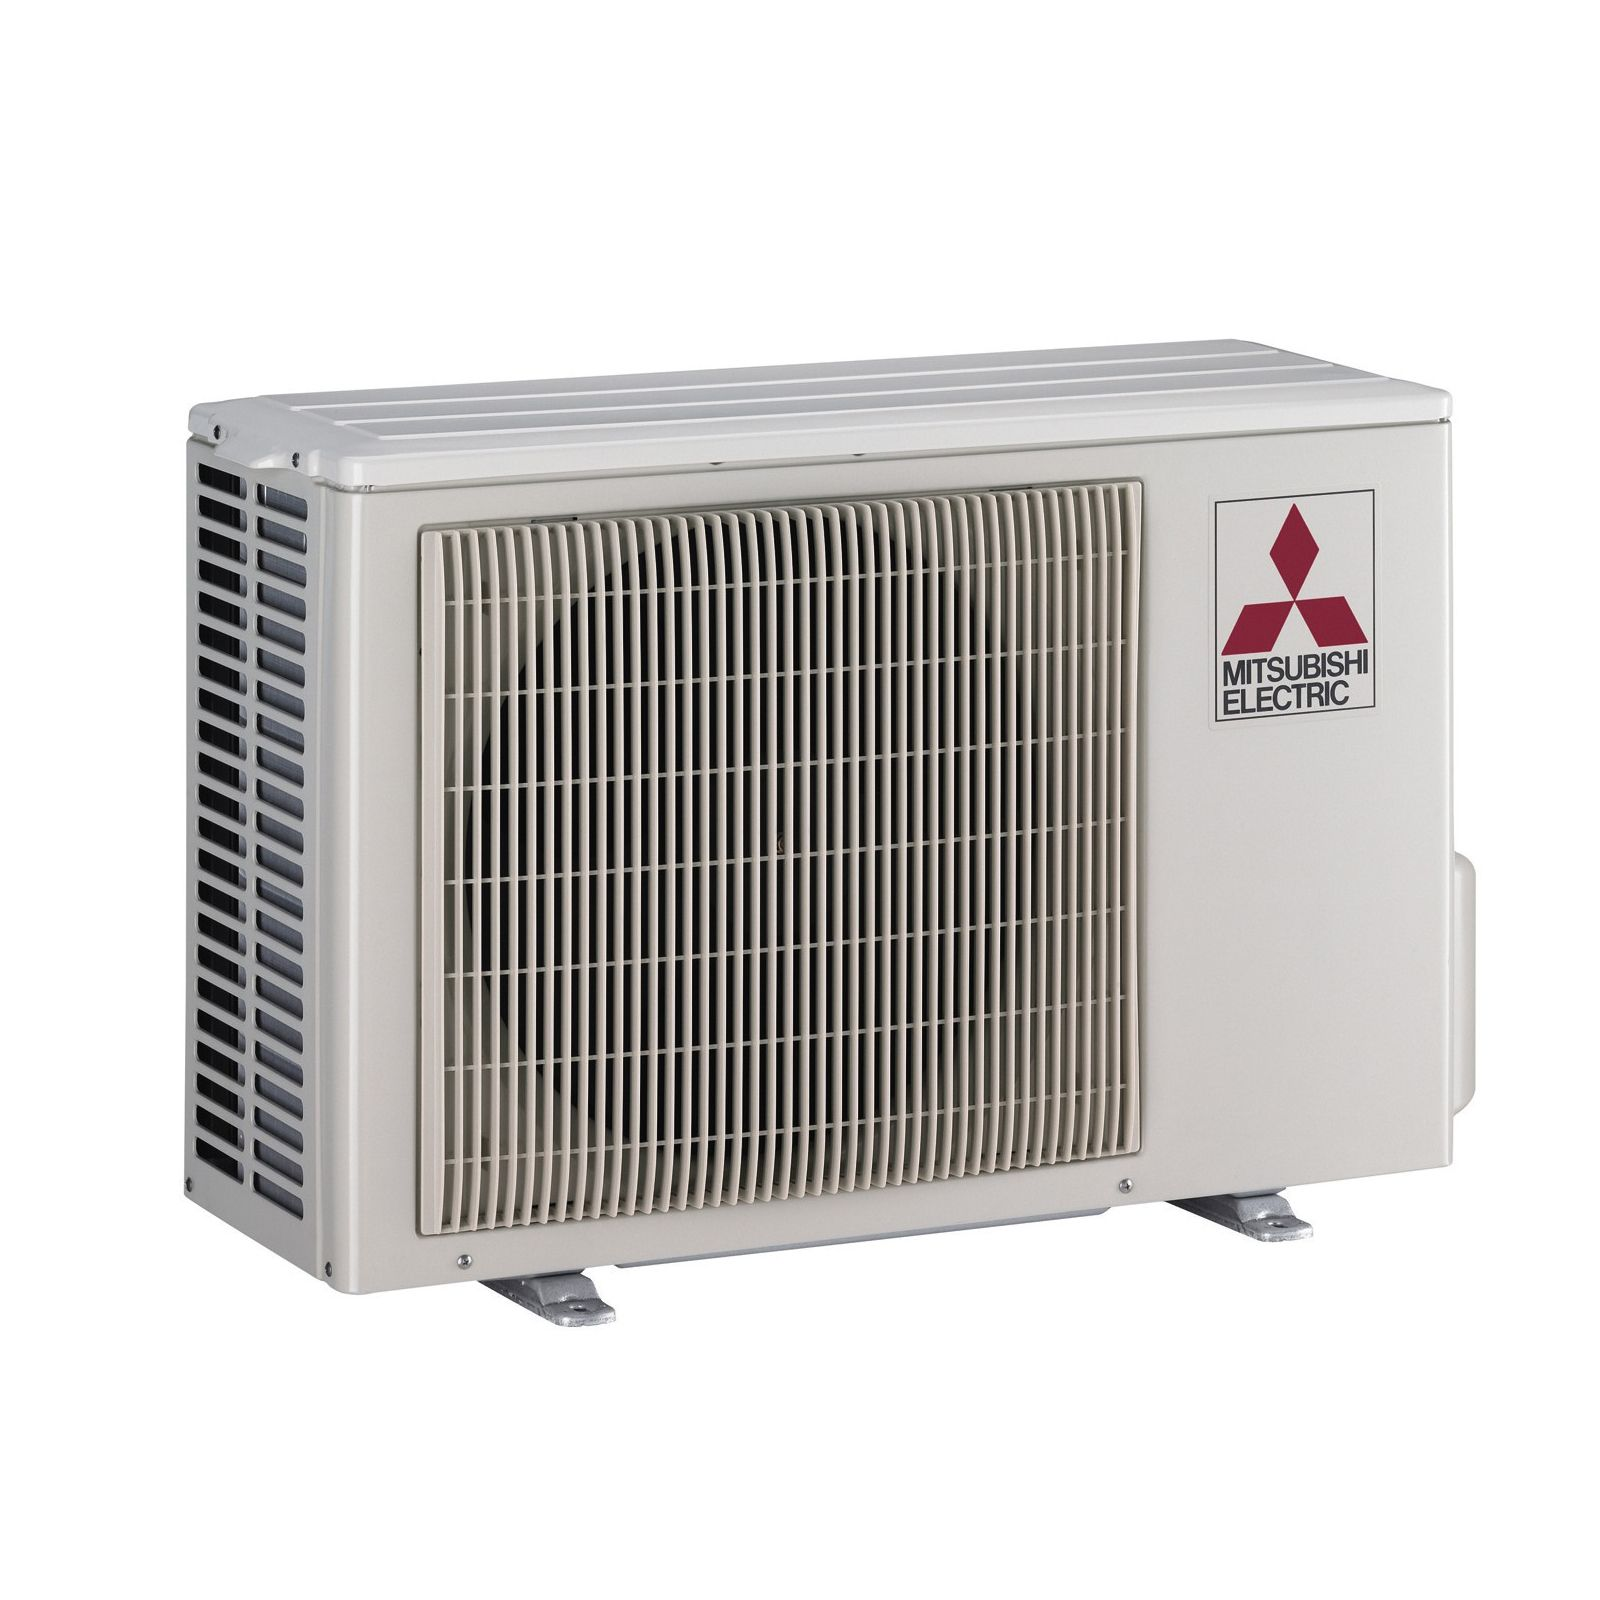 2. Mitsubishi Electric сплит-система настенный MS-GF25 VA/MU-GF25VA (серия Classic)